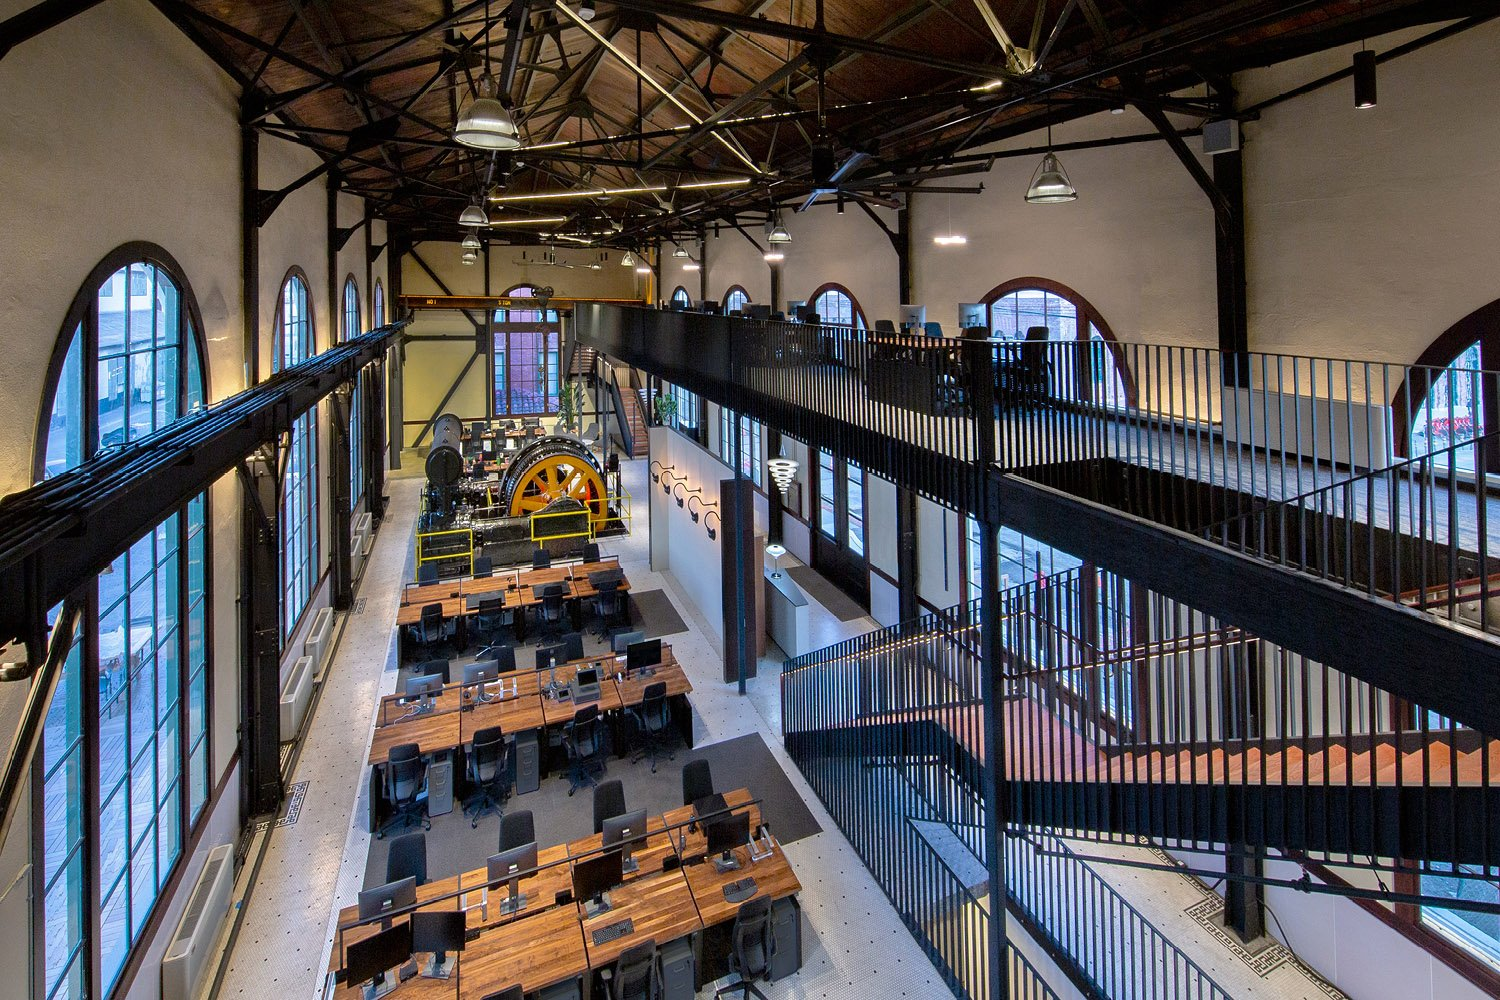 In adapting the Powerhouse for office use, the architect's and developer's achieve design objectives include arranging spaces to maximize the inherent attributes of the building such as vistas of a park in Billy Hustace